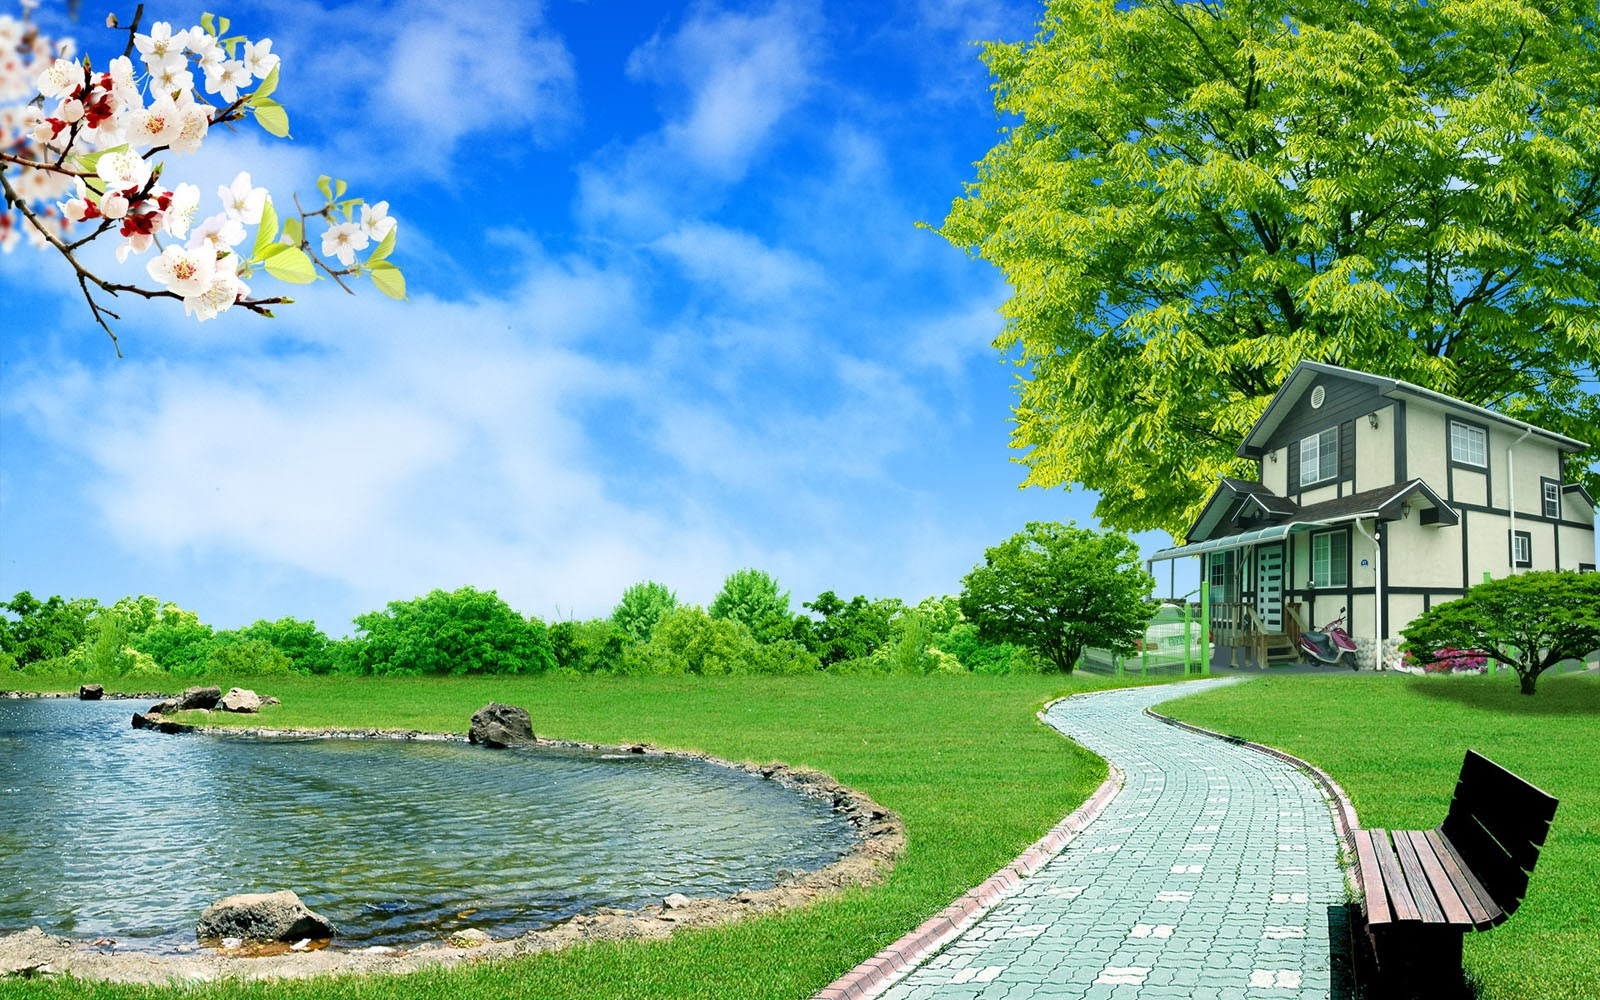 clovisso wallpaper gallery: house and pond wallpapers